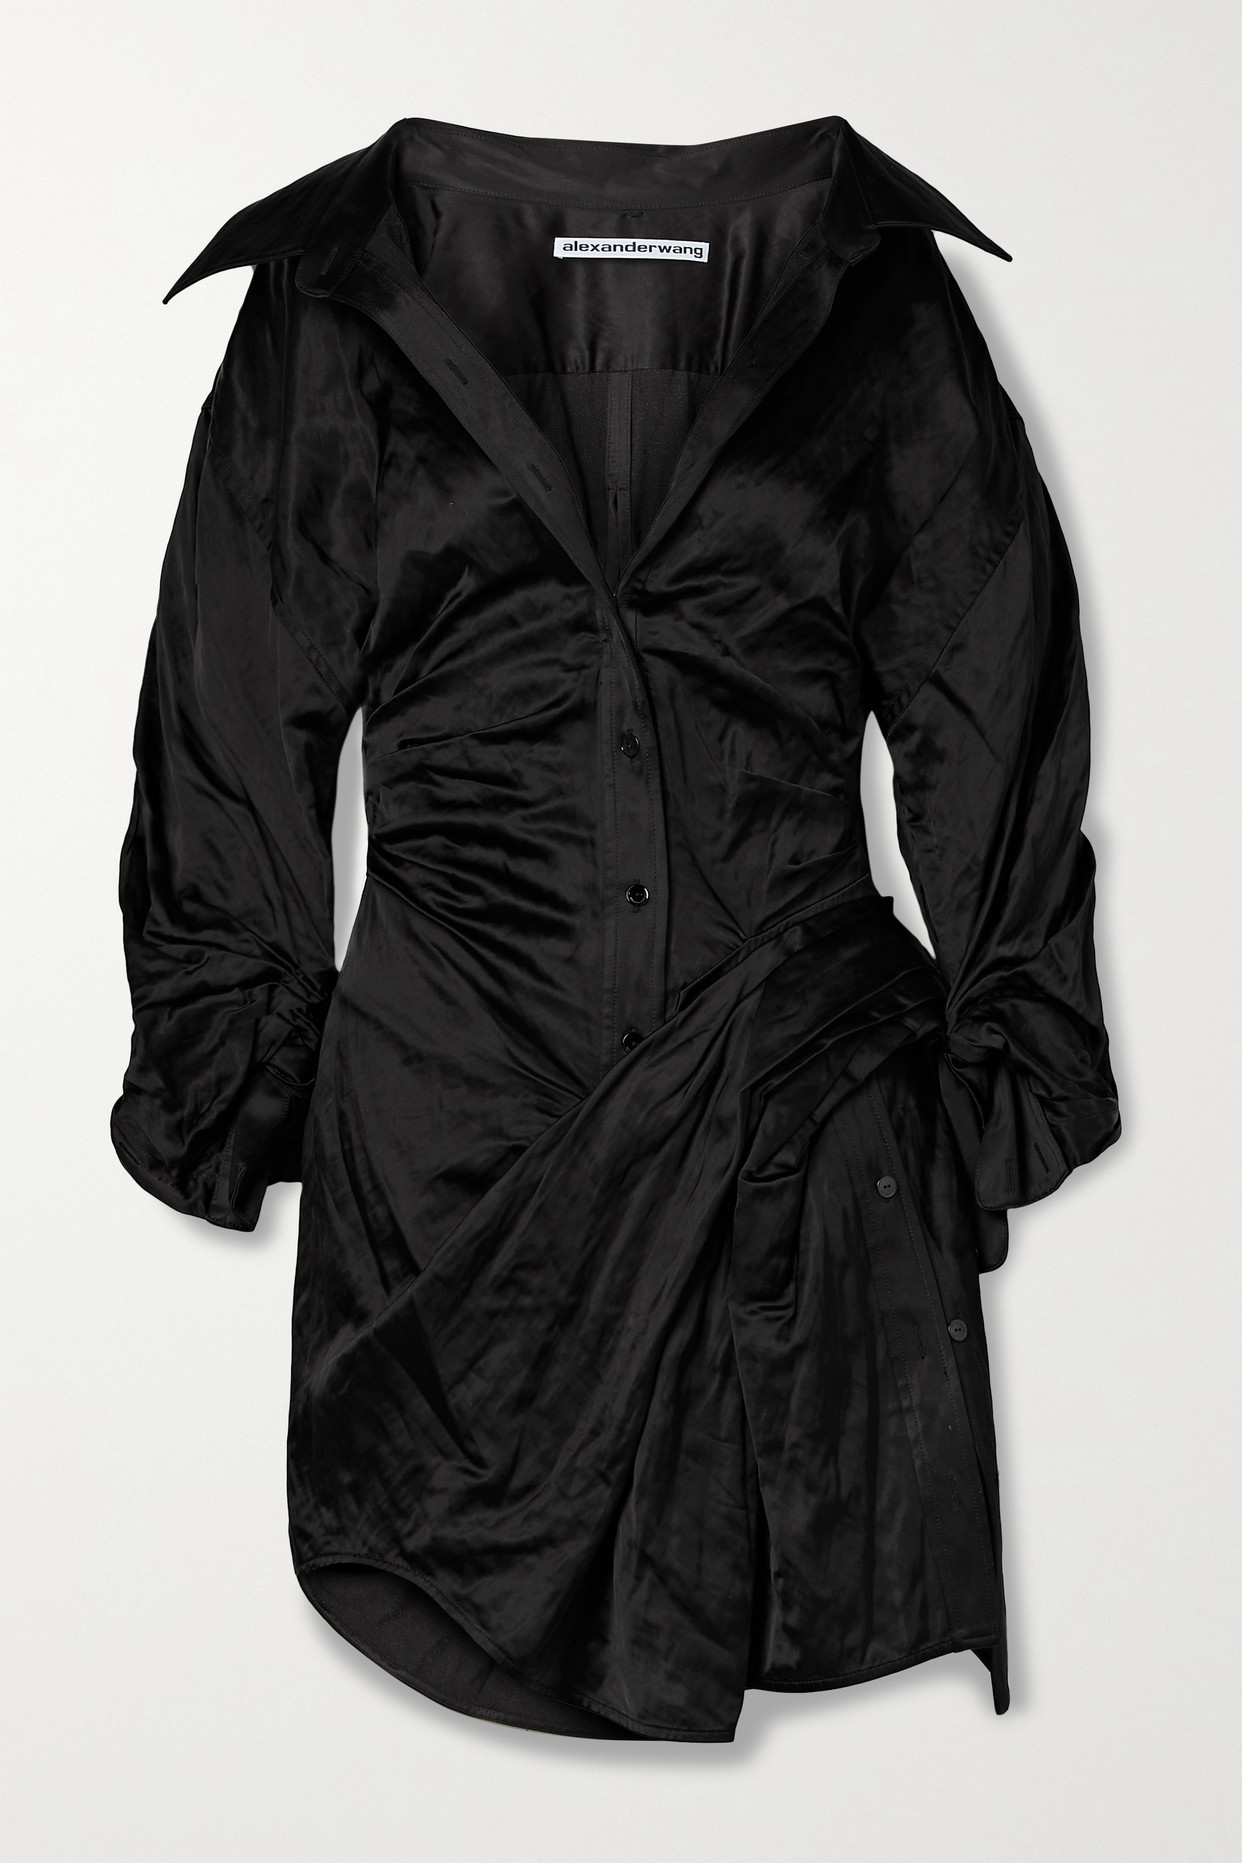 ALEXANDER WANG - Ruched Crinkled-satin Mini Shirt Dress - Black - US6